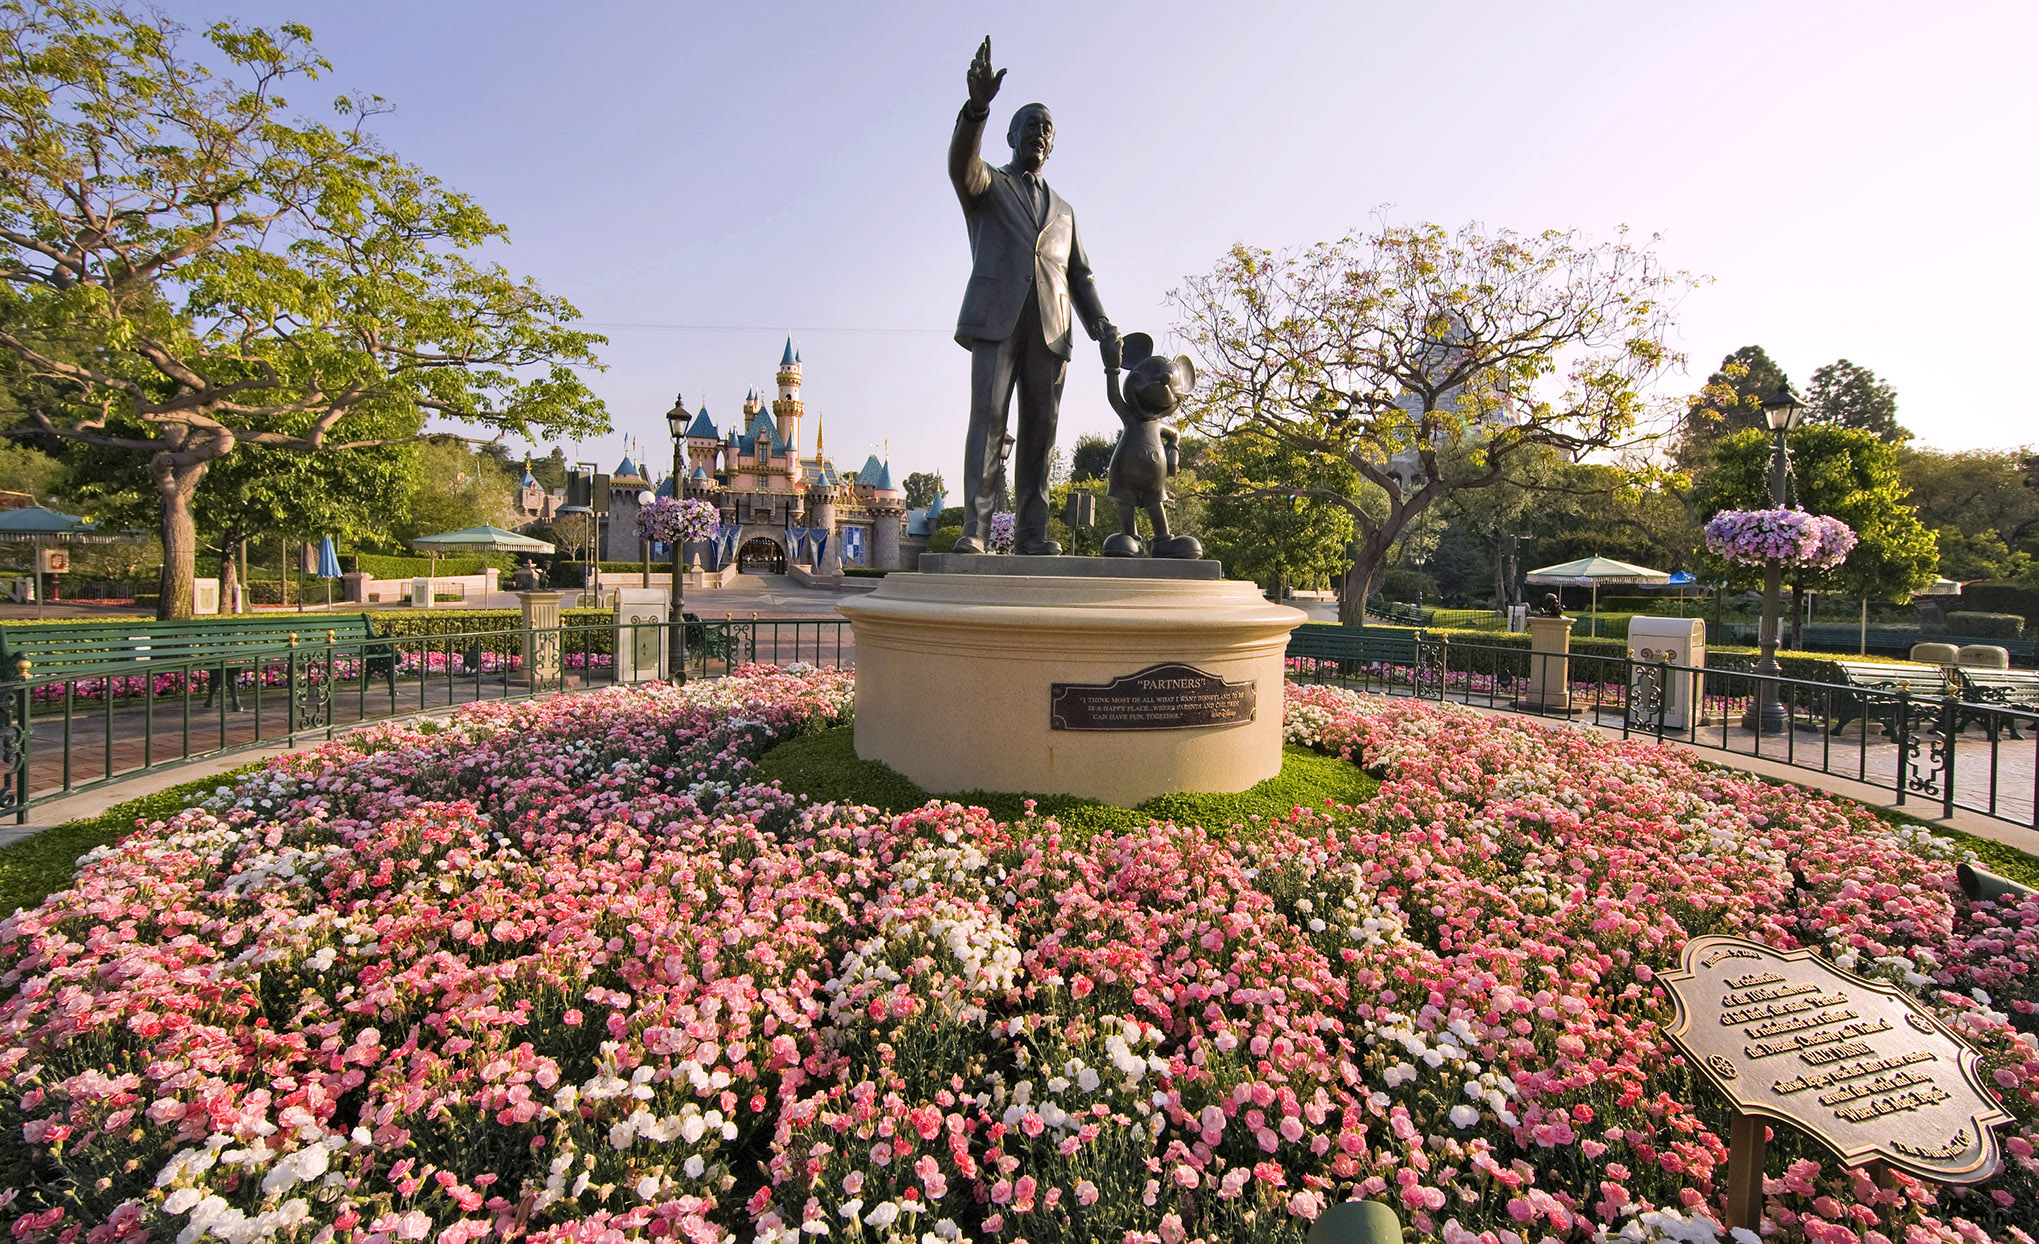 Partners bronze statue of Walt Disney and Mickey Mouse surrounded by pink at white flowers at Disneyland